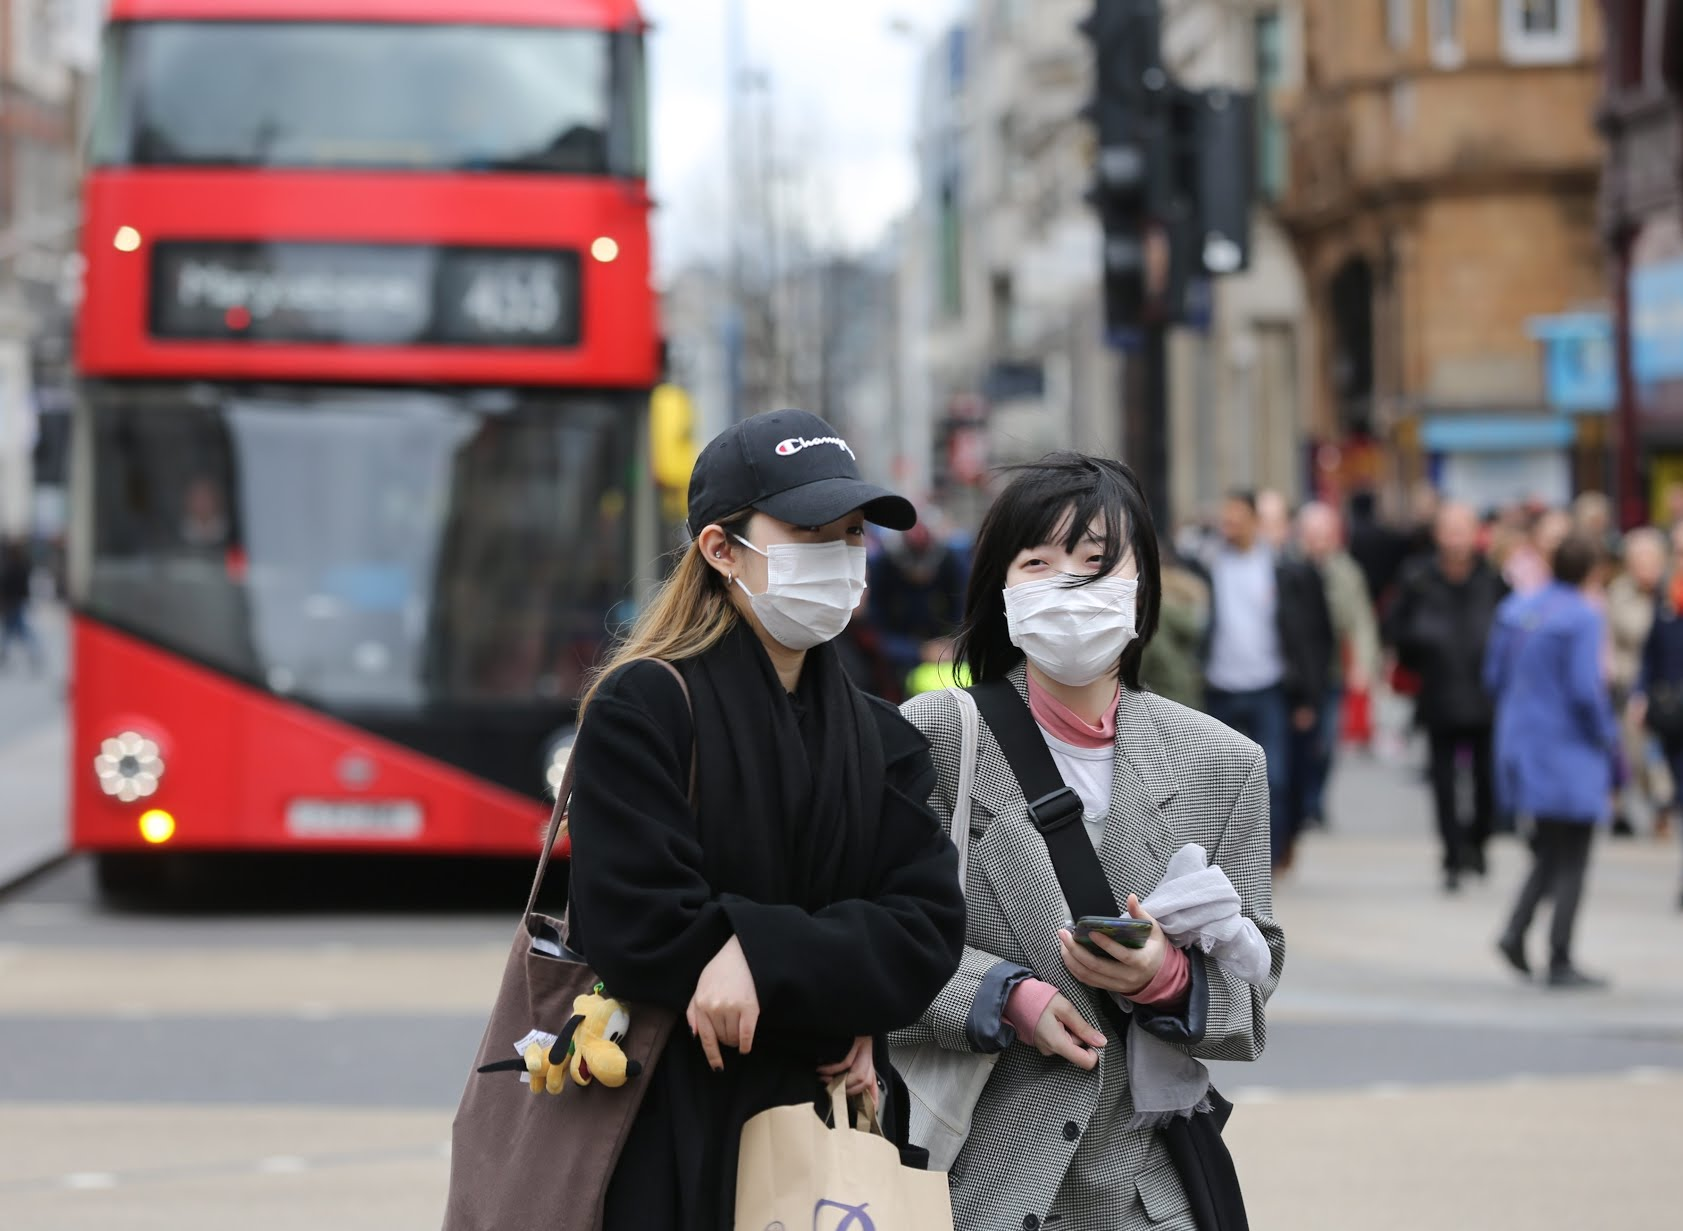 People wearing face masks in London amid the coronavirus outbreak